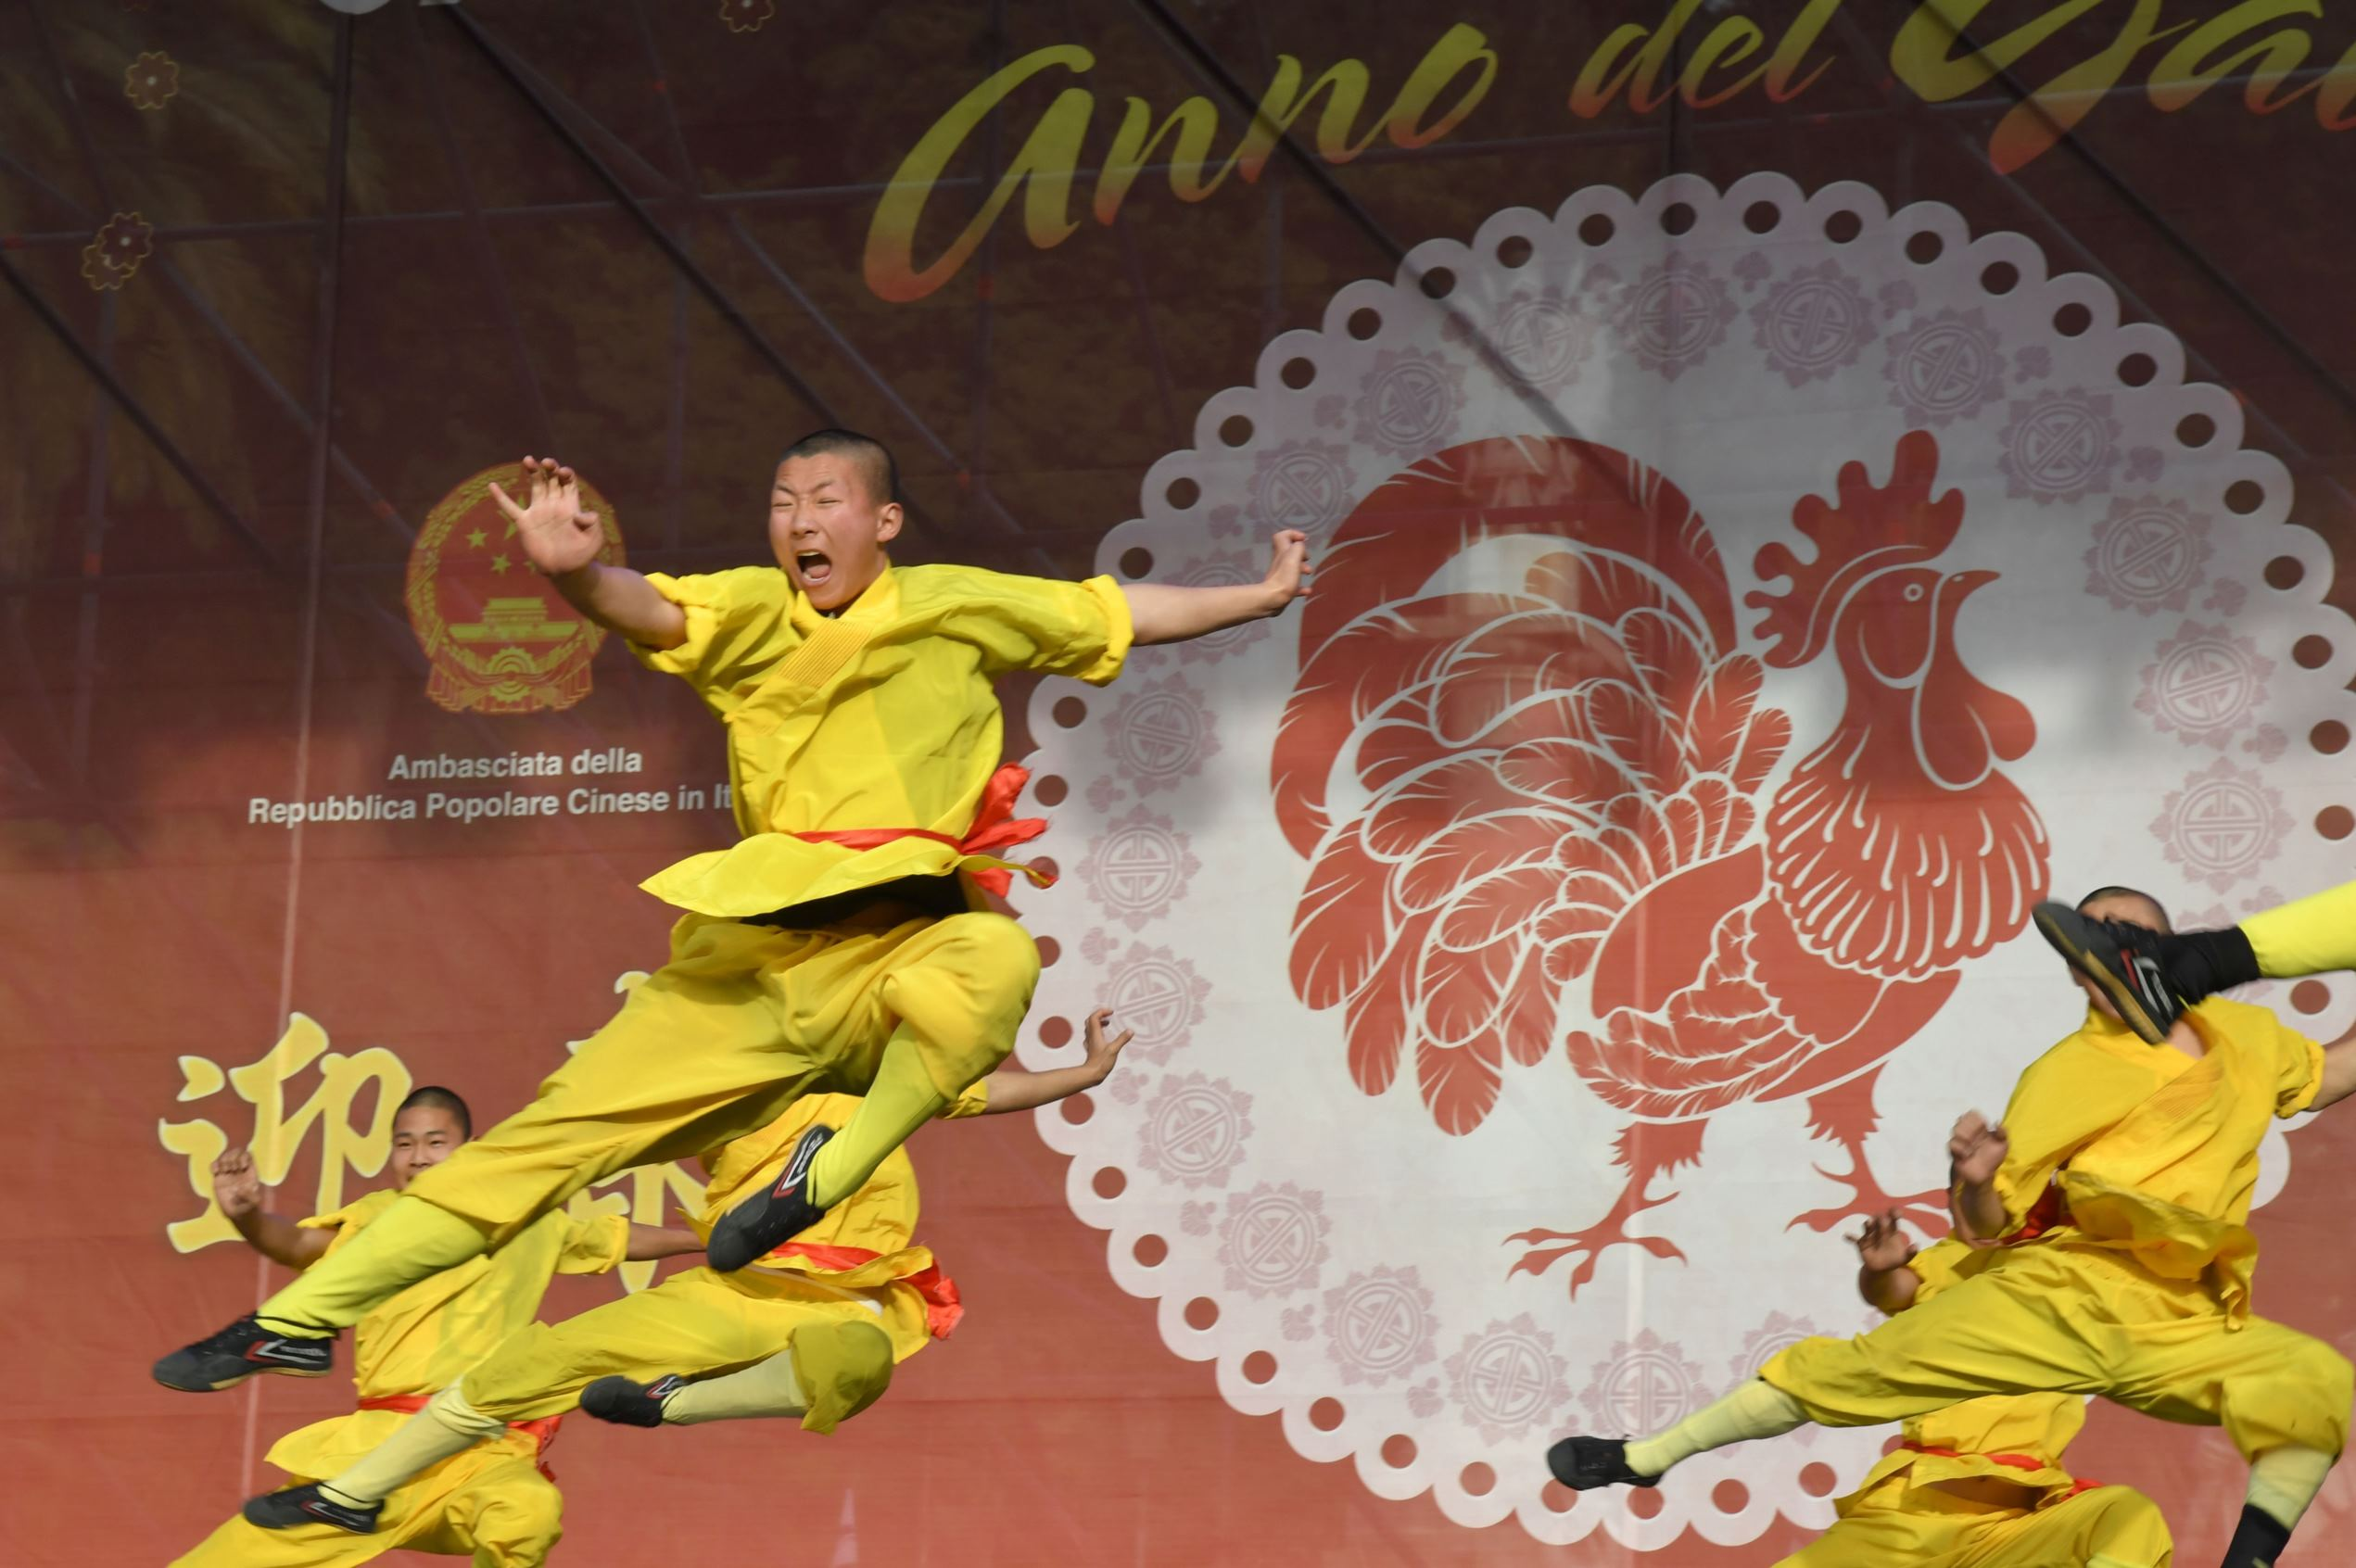 Members of the Chinese community perform on stage during the celebrations of the Chinese Lunar New Year on January 28, 2017 in Rome. This Lunar New Year marks the start of the Year of the Rooster.  Andreas Solaro/AFP/Getty Images